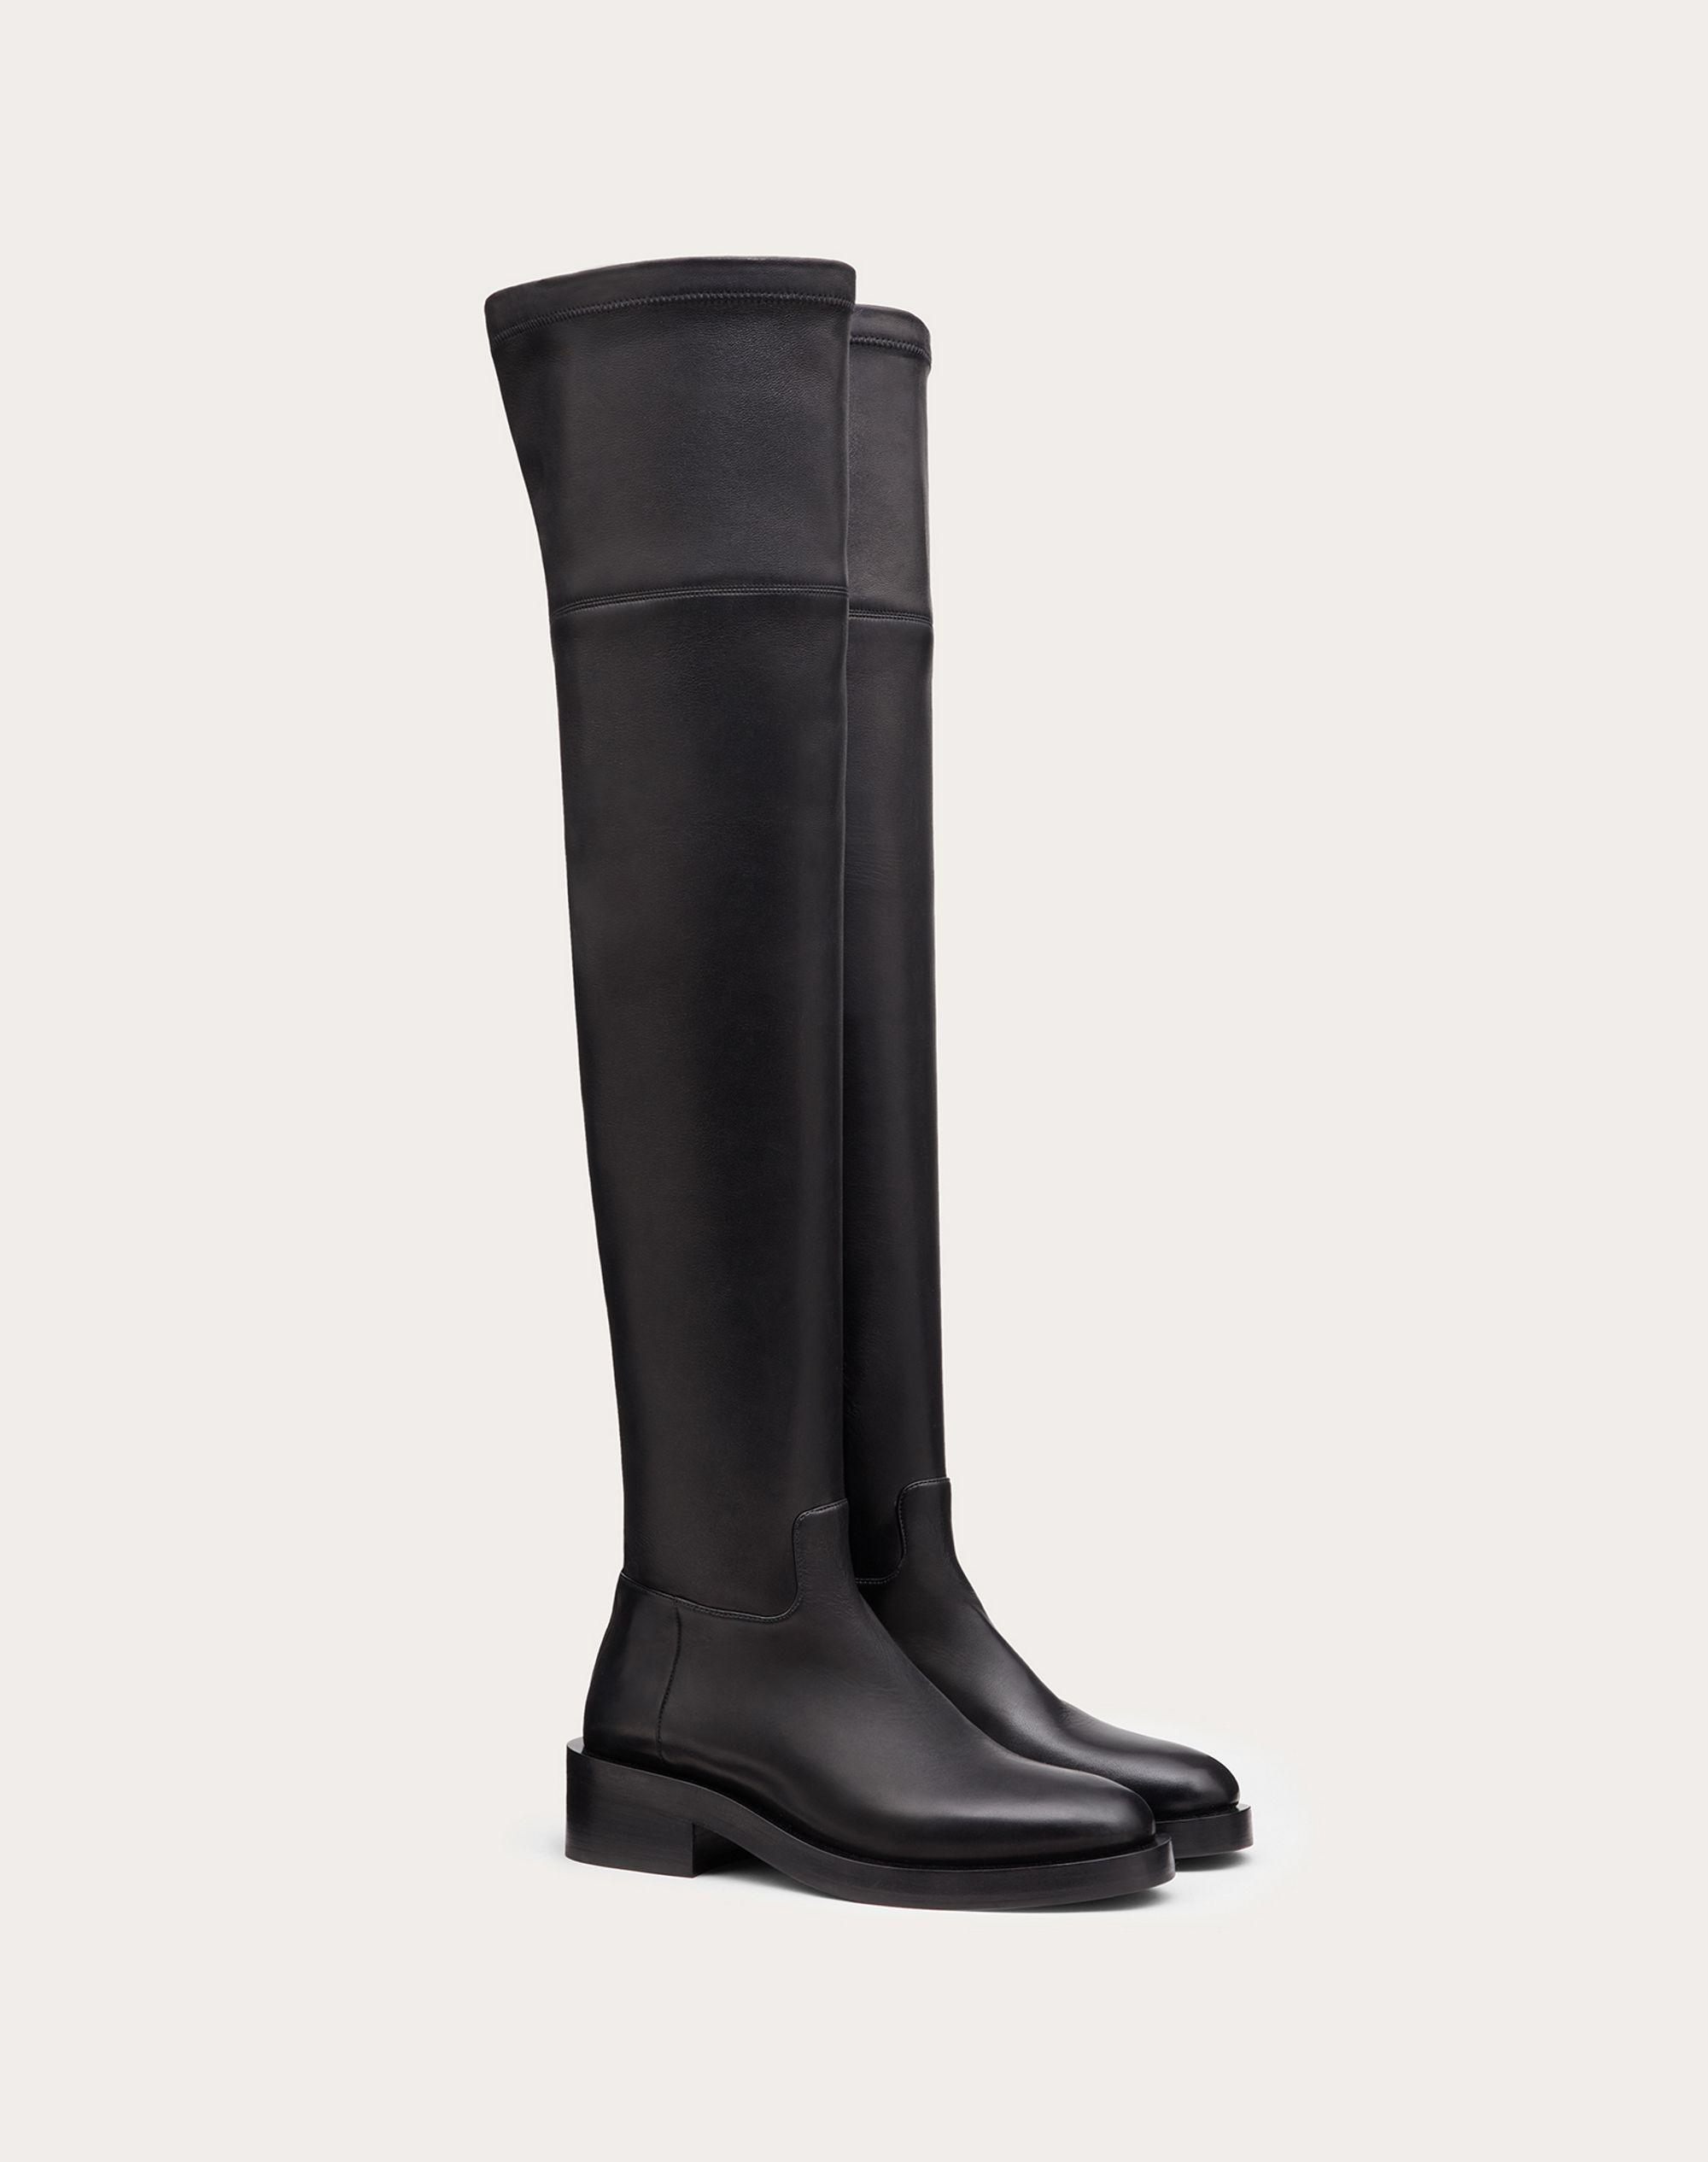 ROMAN STUD STRETCH NAPPA OVER-THE-KNEE BOOT 30MM 1